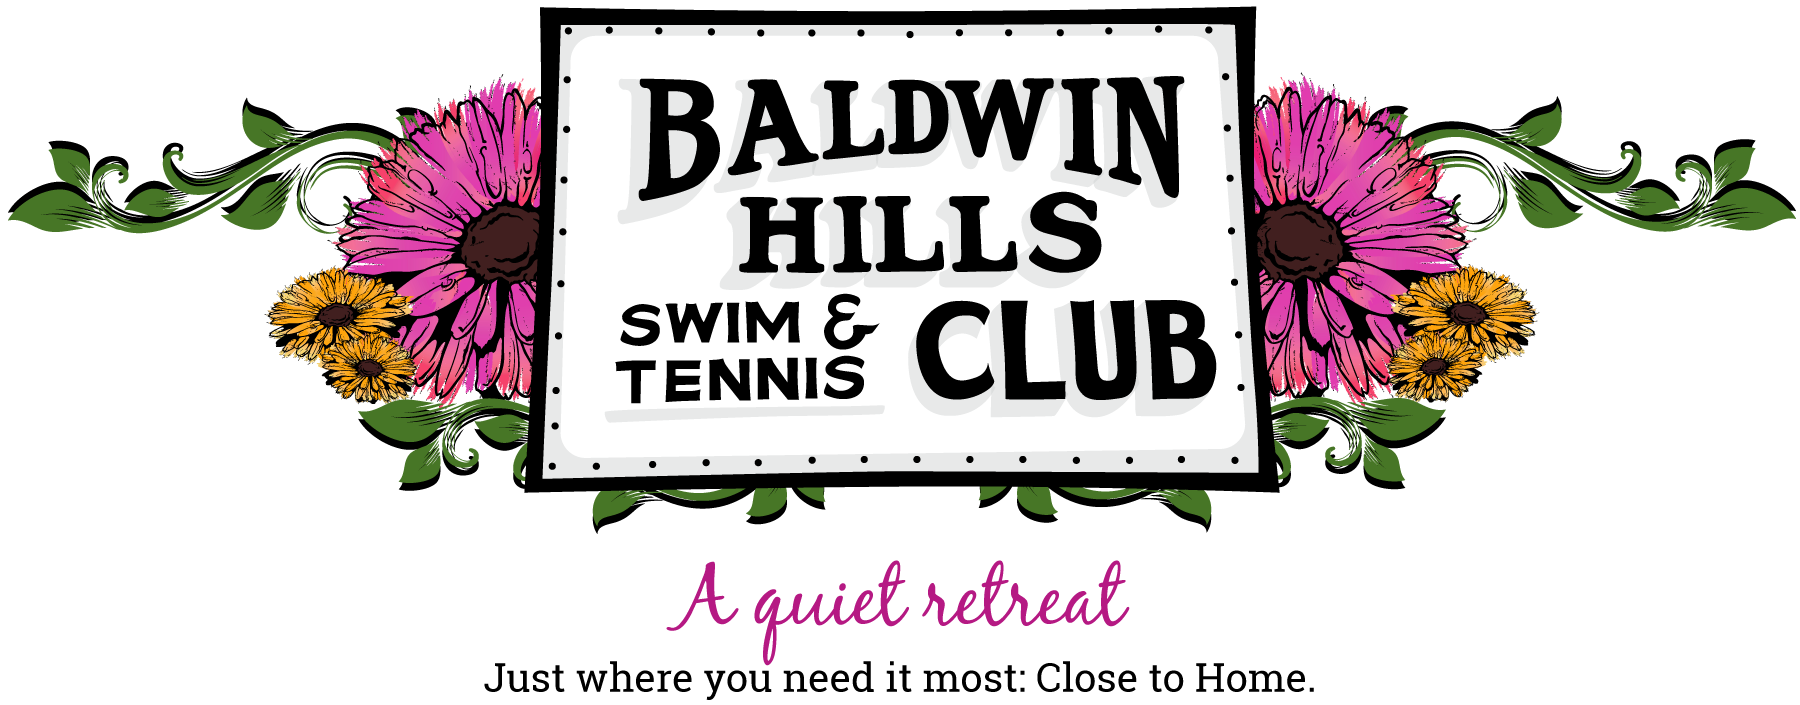 Baldwin Hills Swim Club